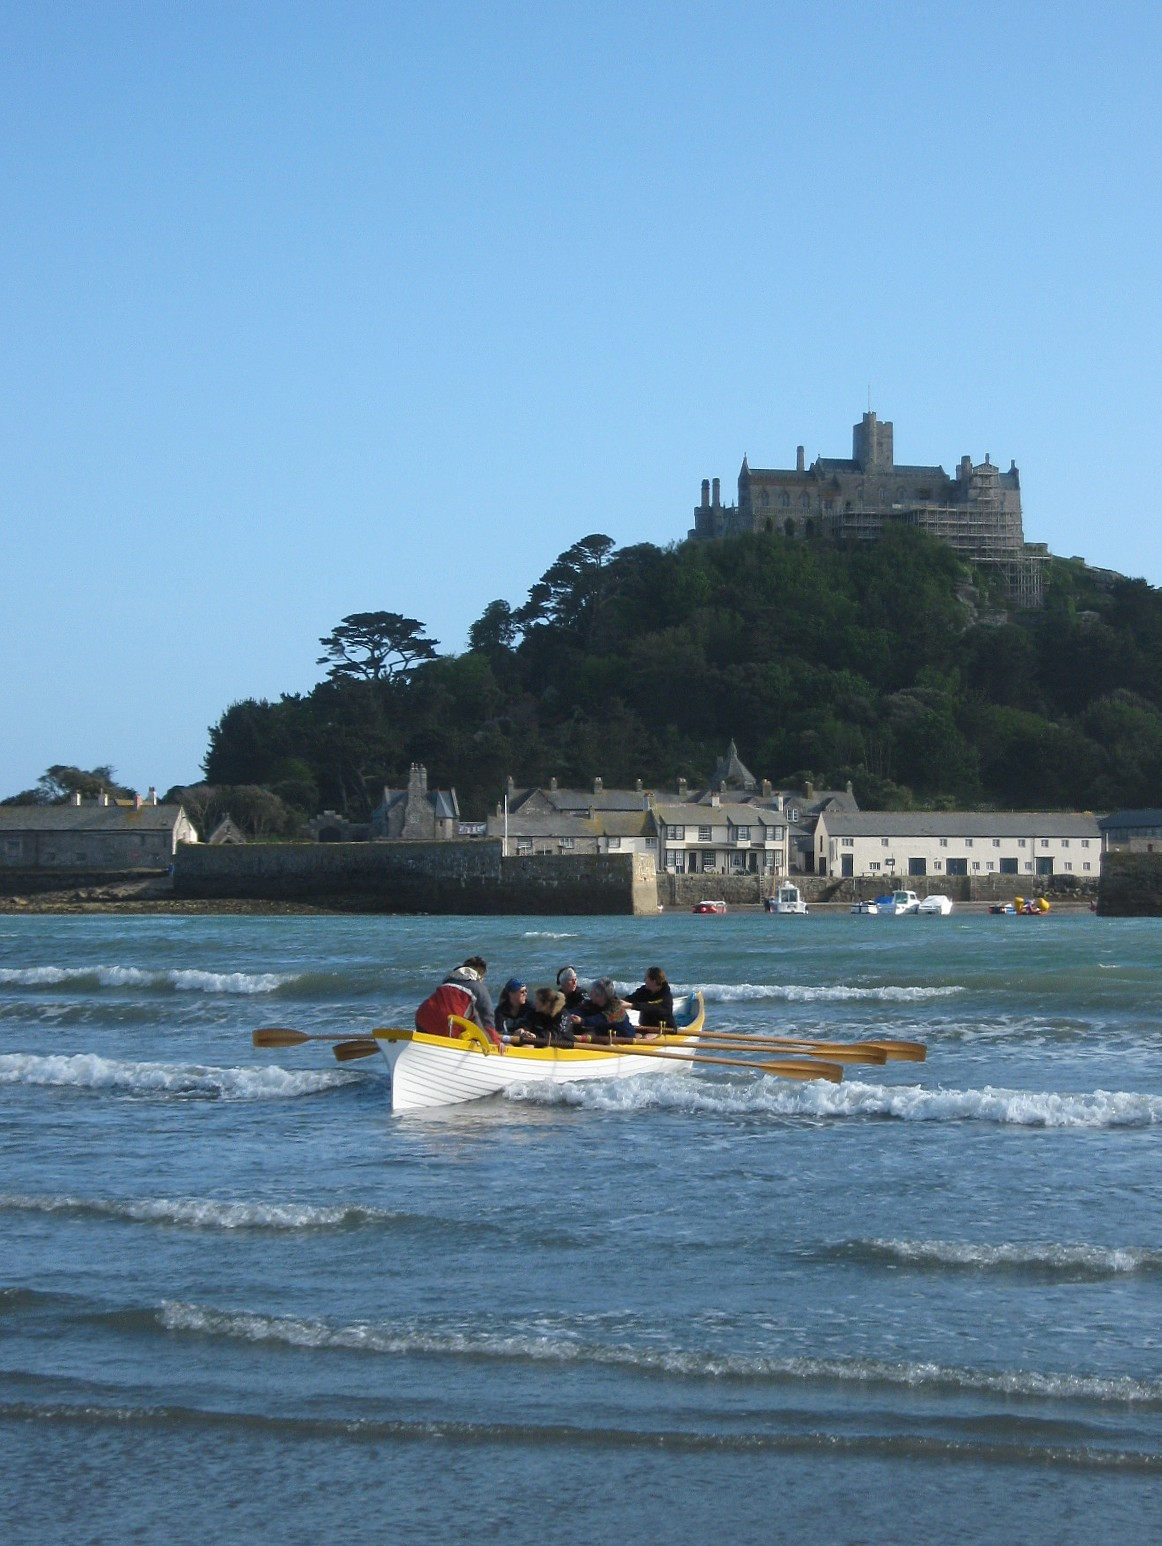 Mounts Bay Pilot Gig Club